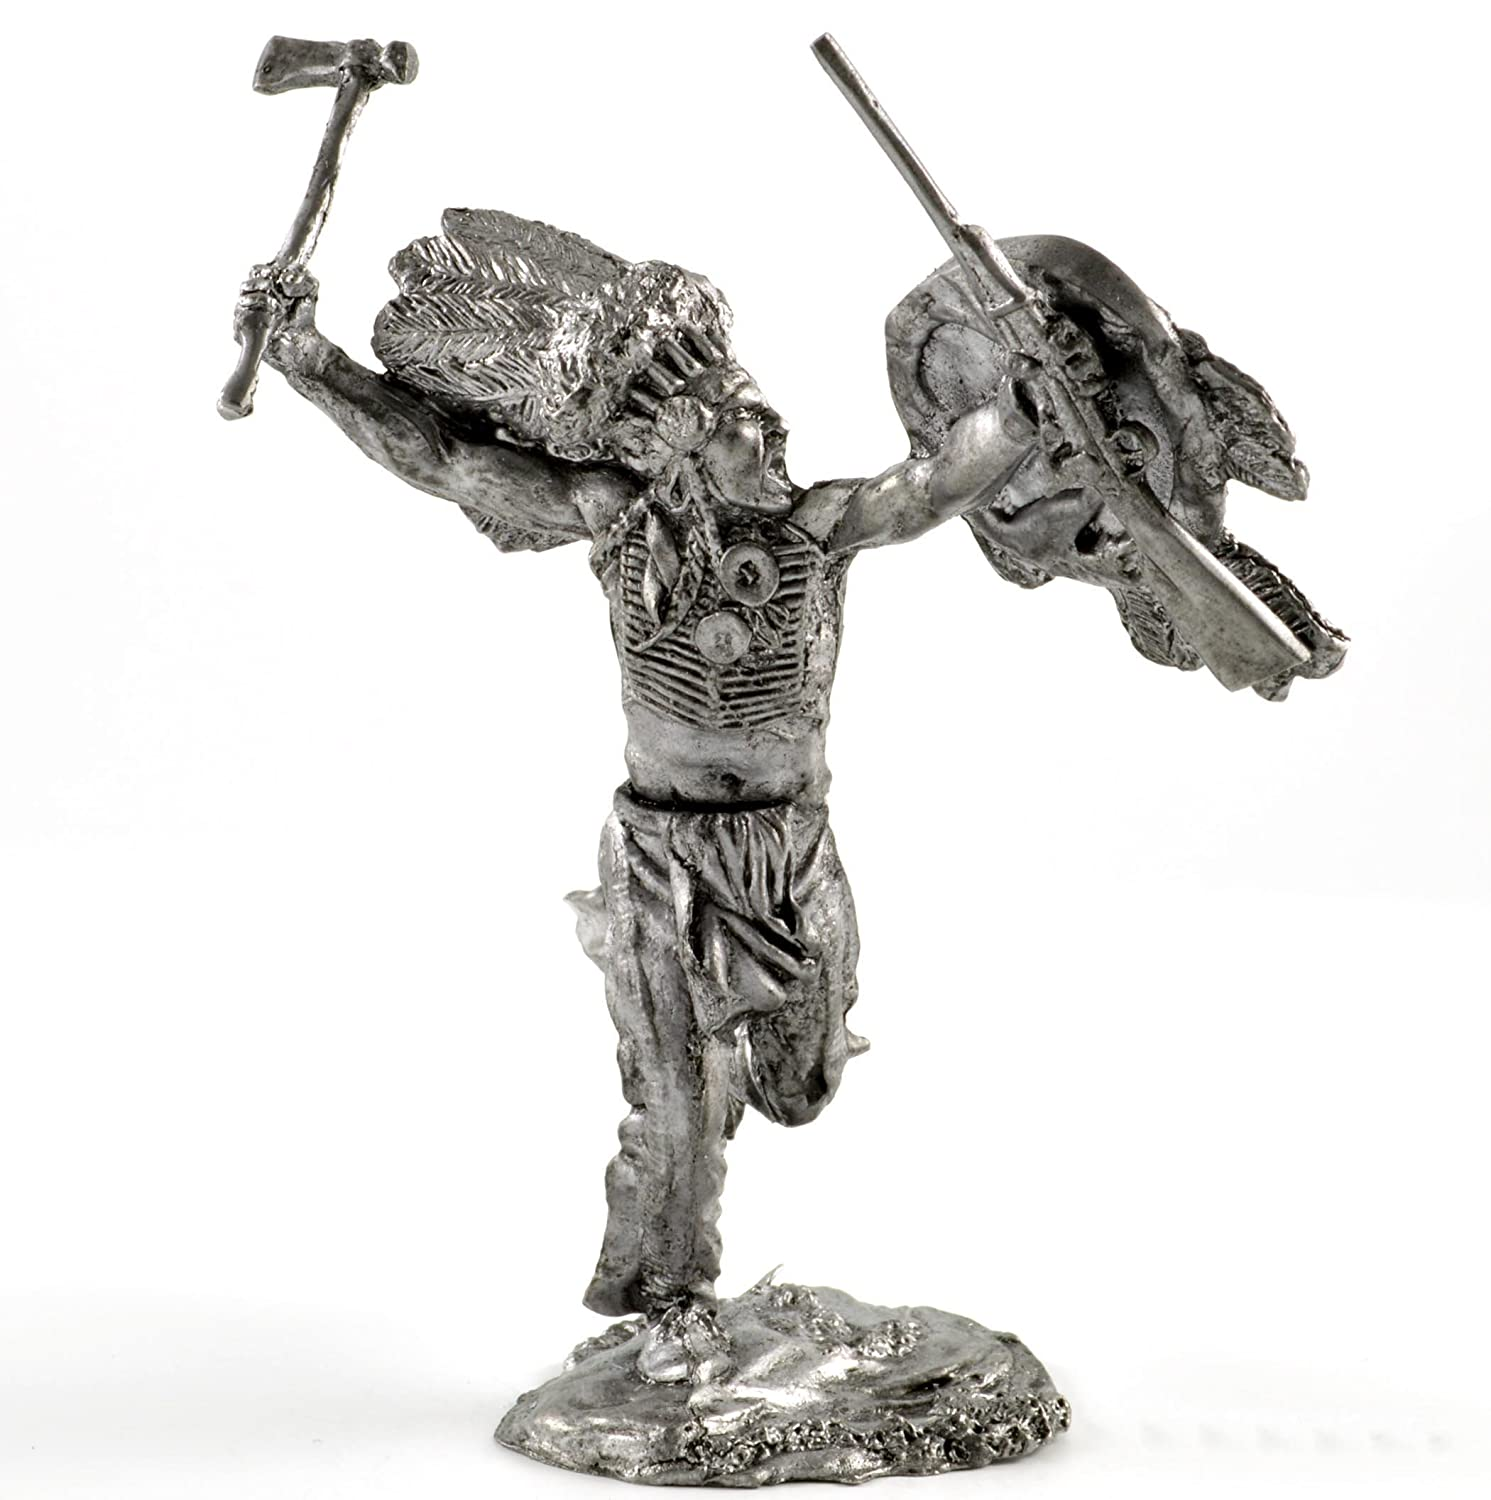 Tin toy soldiers Gifts /& Souvenirs #1106 Wild West Collection 54mm Metal sculpture miniature figurine scale 1//32 Sheriff